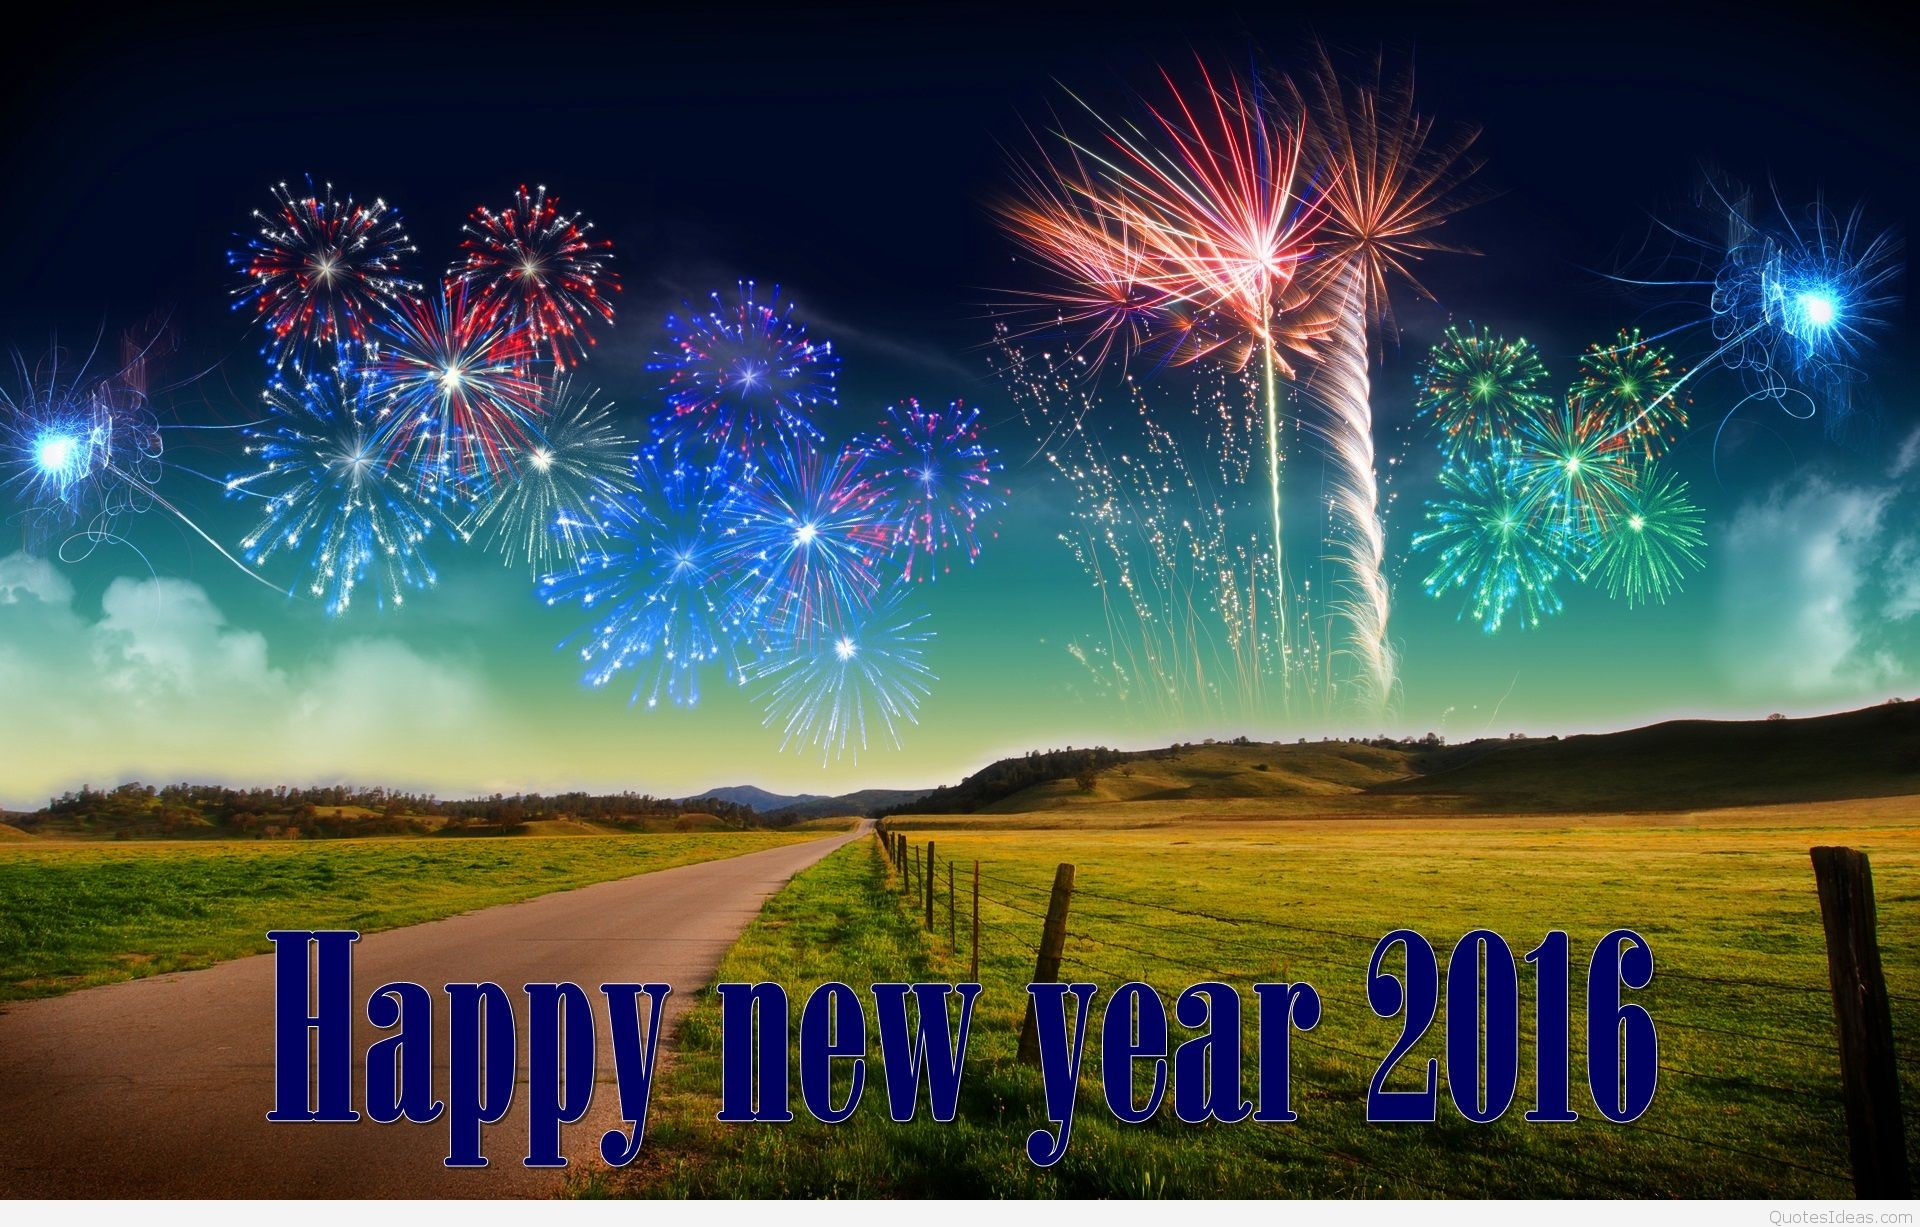 Happy New Year wallpaper ·① Download free stunning HD ...